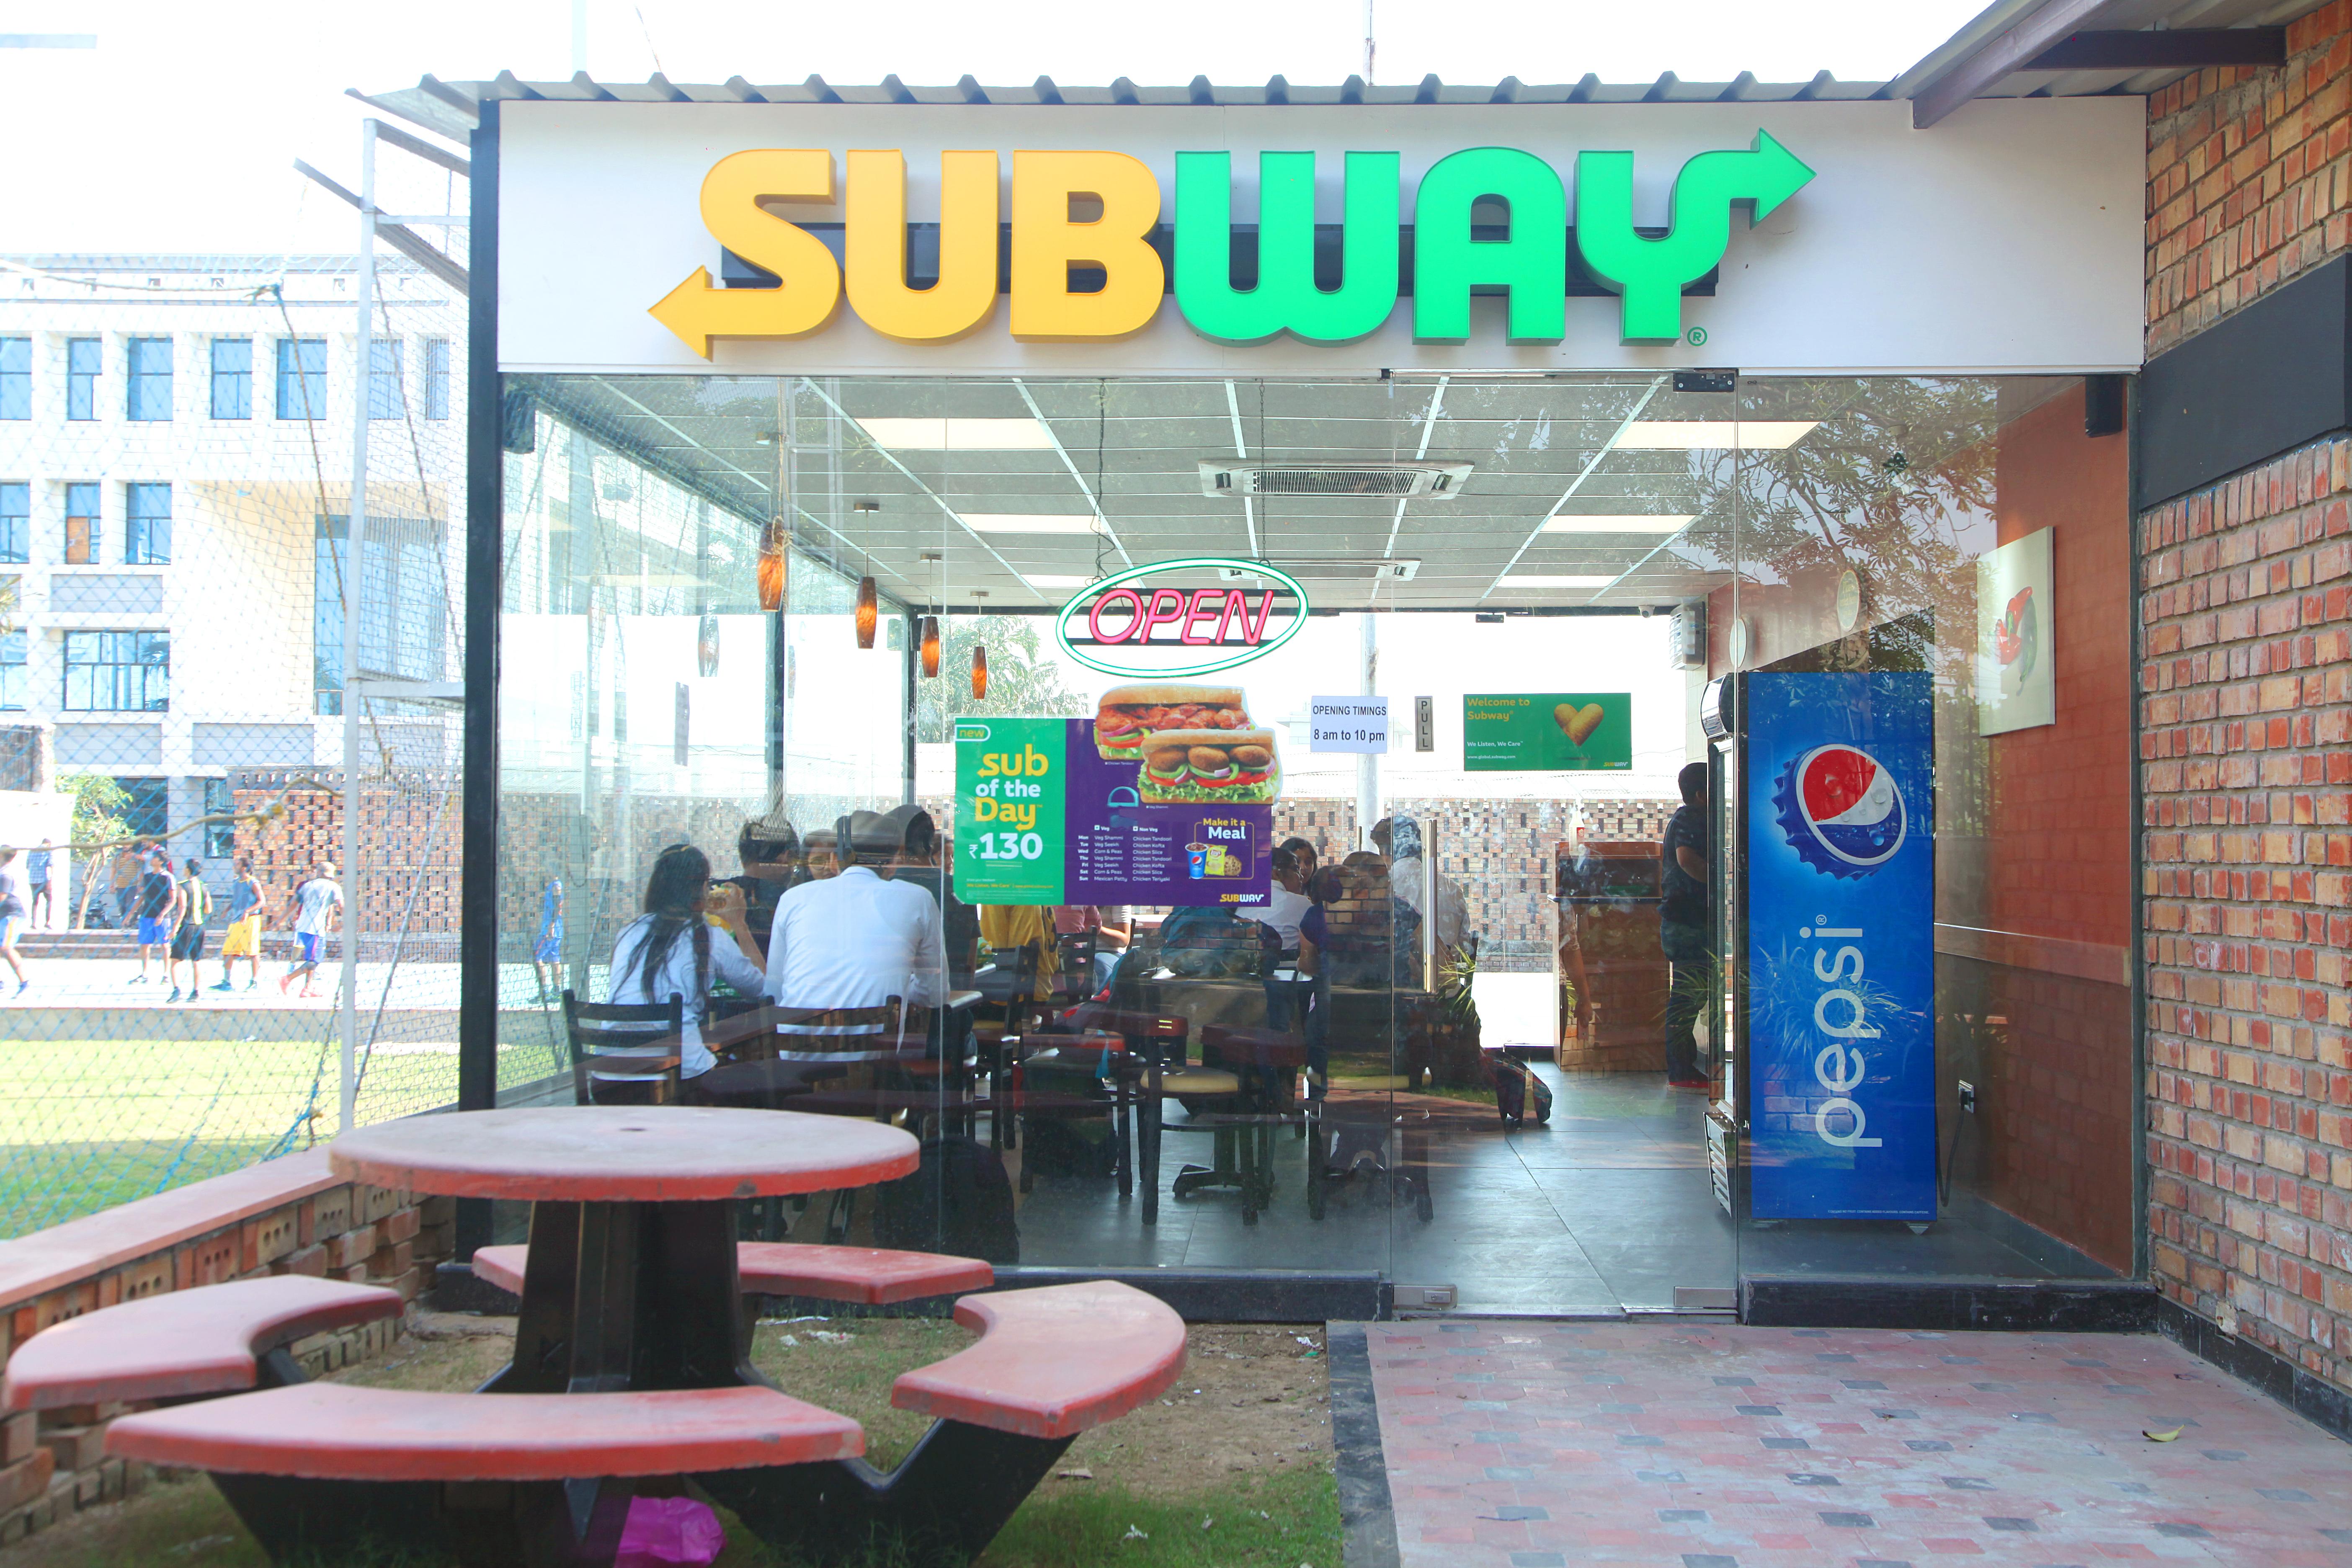 <center>Subway: Outlet of World's largest Fast Food Chain